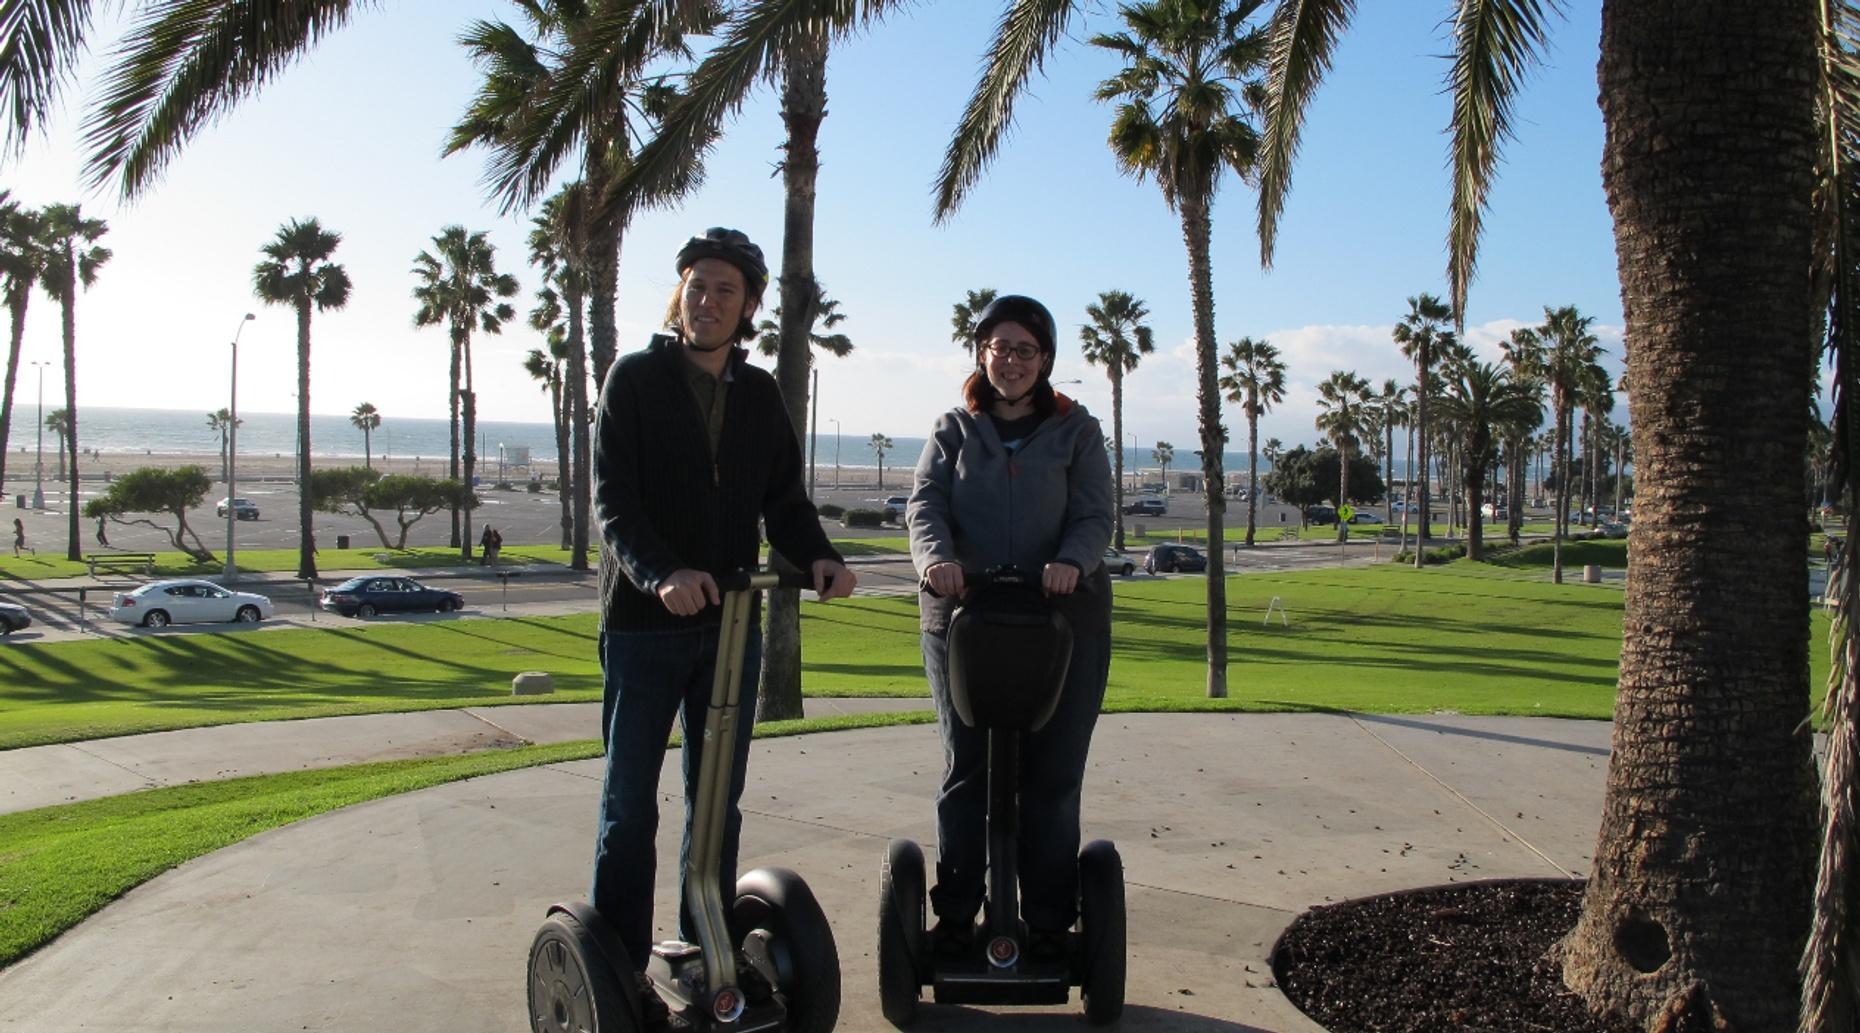 Historical Segway Tour of Kissimmee